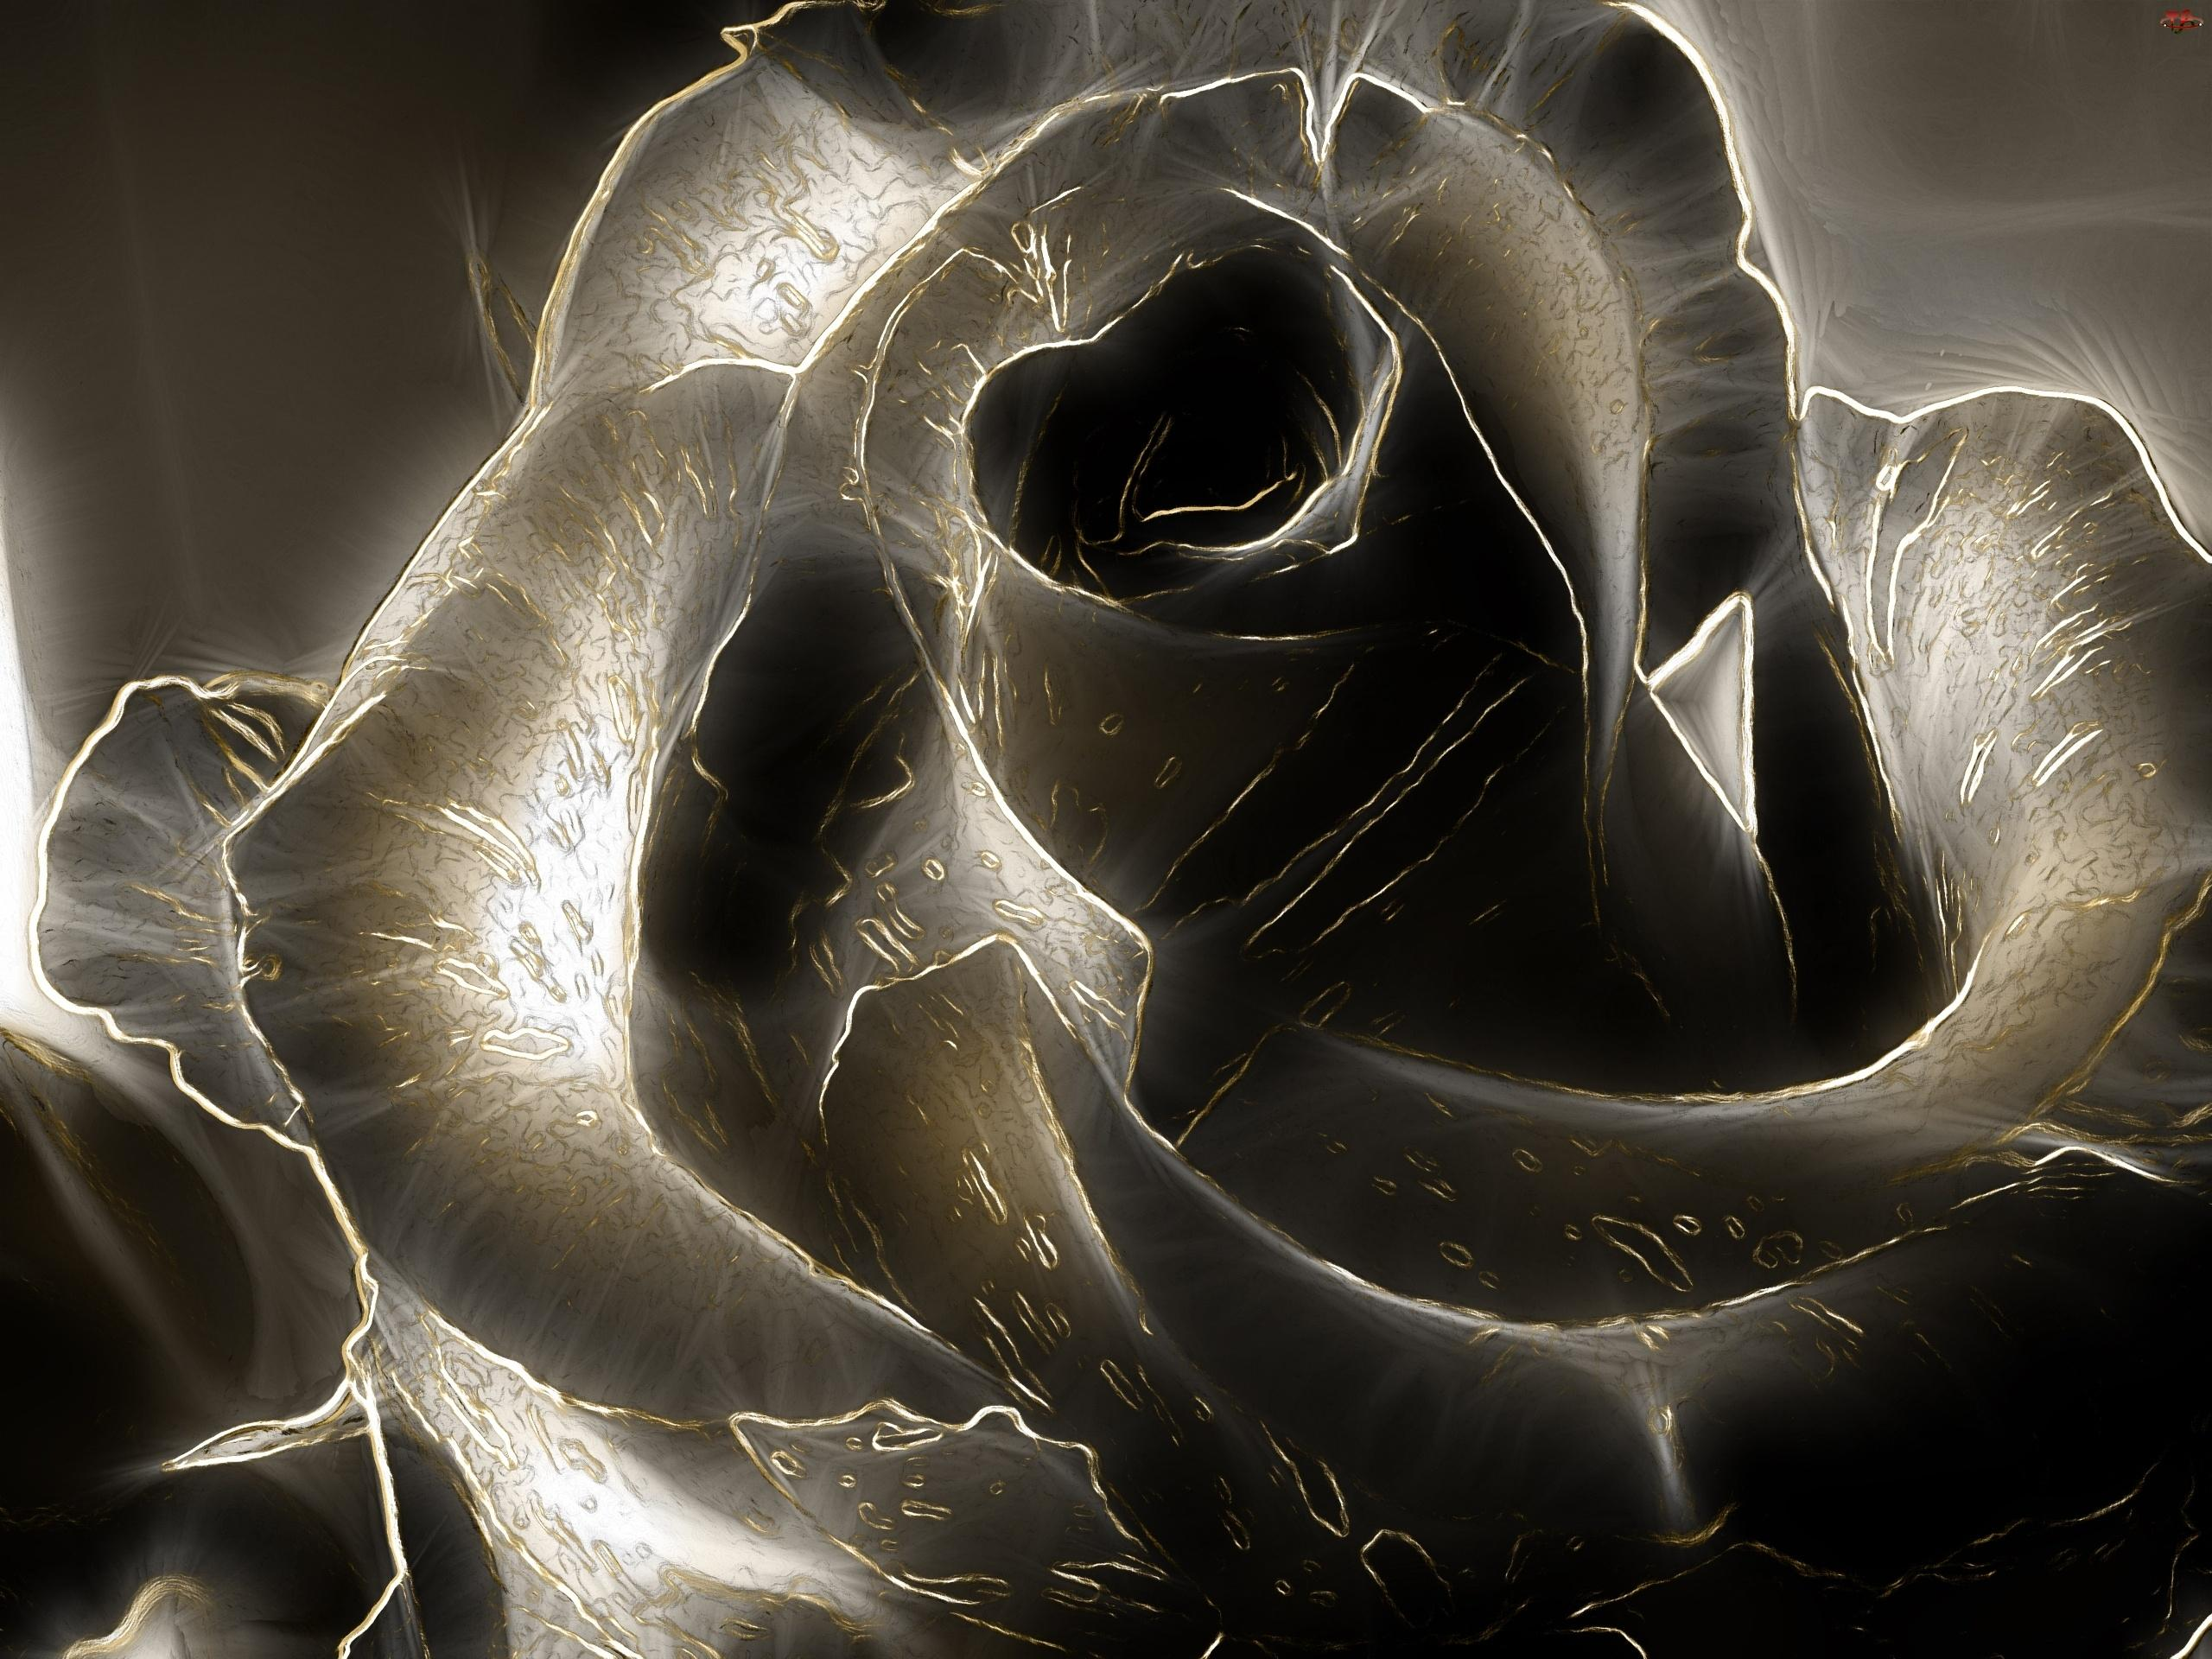 2560x1920 Black Rose Wallpapers High Quality | Download Free